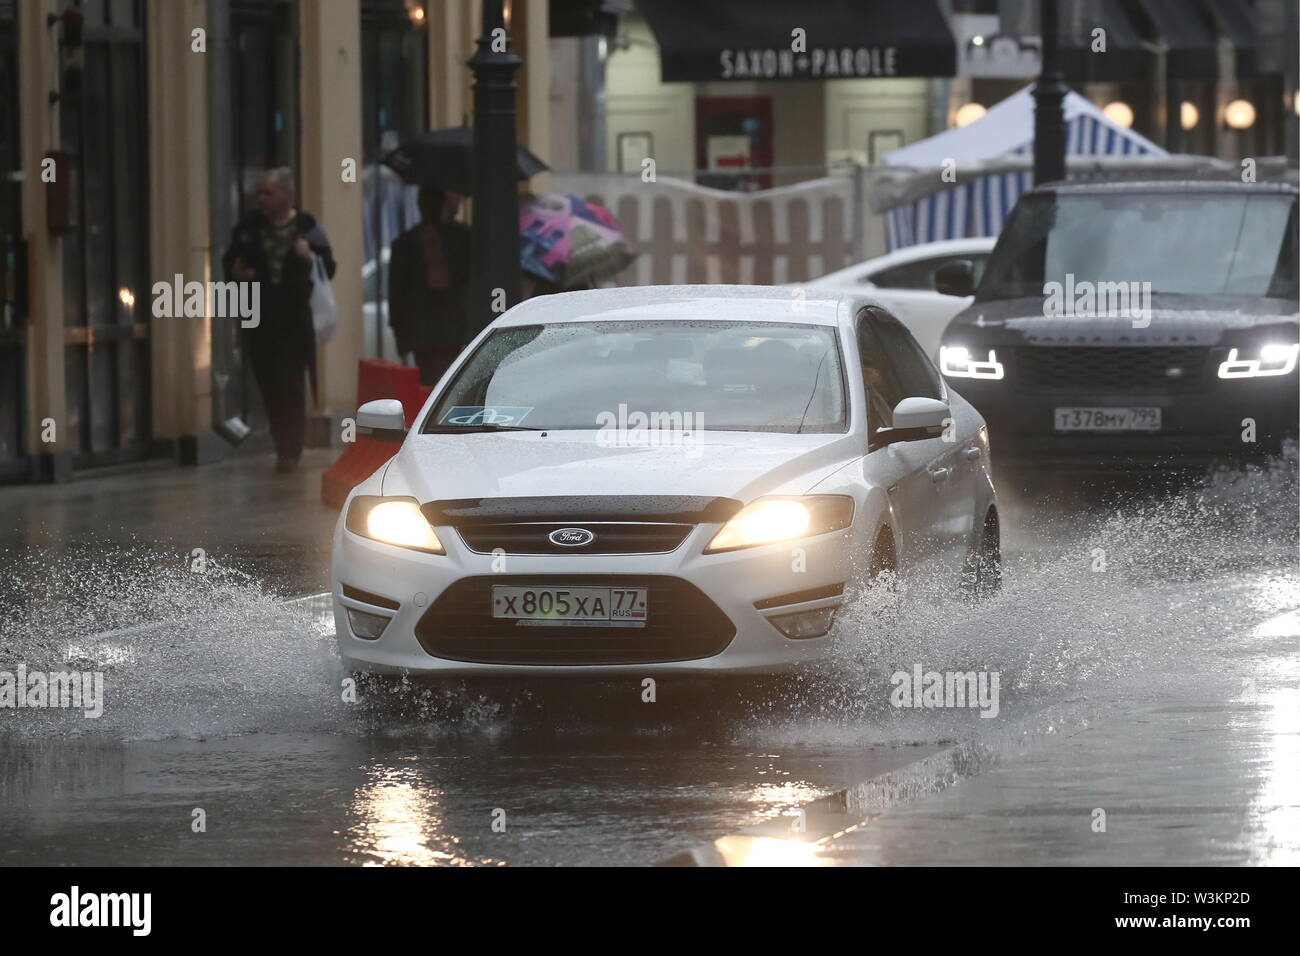 MOSCOW, RUSSIA - JULY 16, 2019: A car drives through water in Bolshoi Palashevsky Lane. Valery Sharifulin/TASS - Stock Image